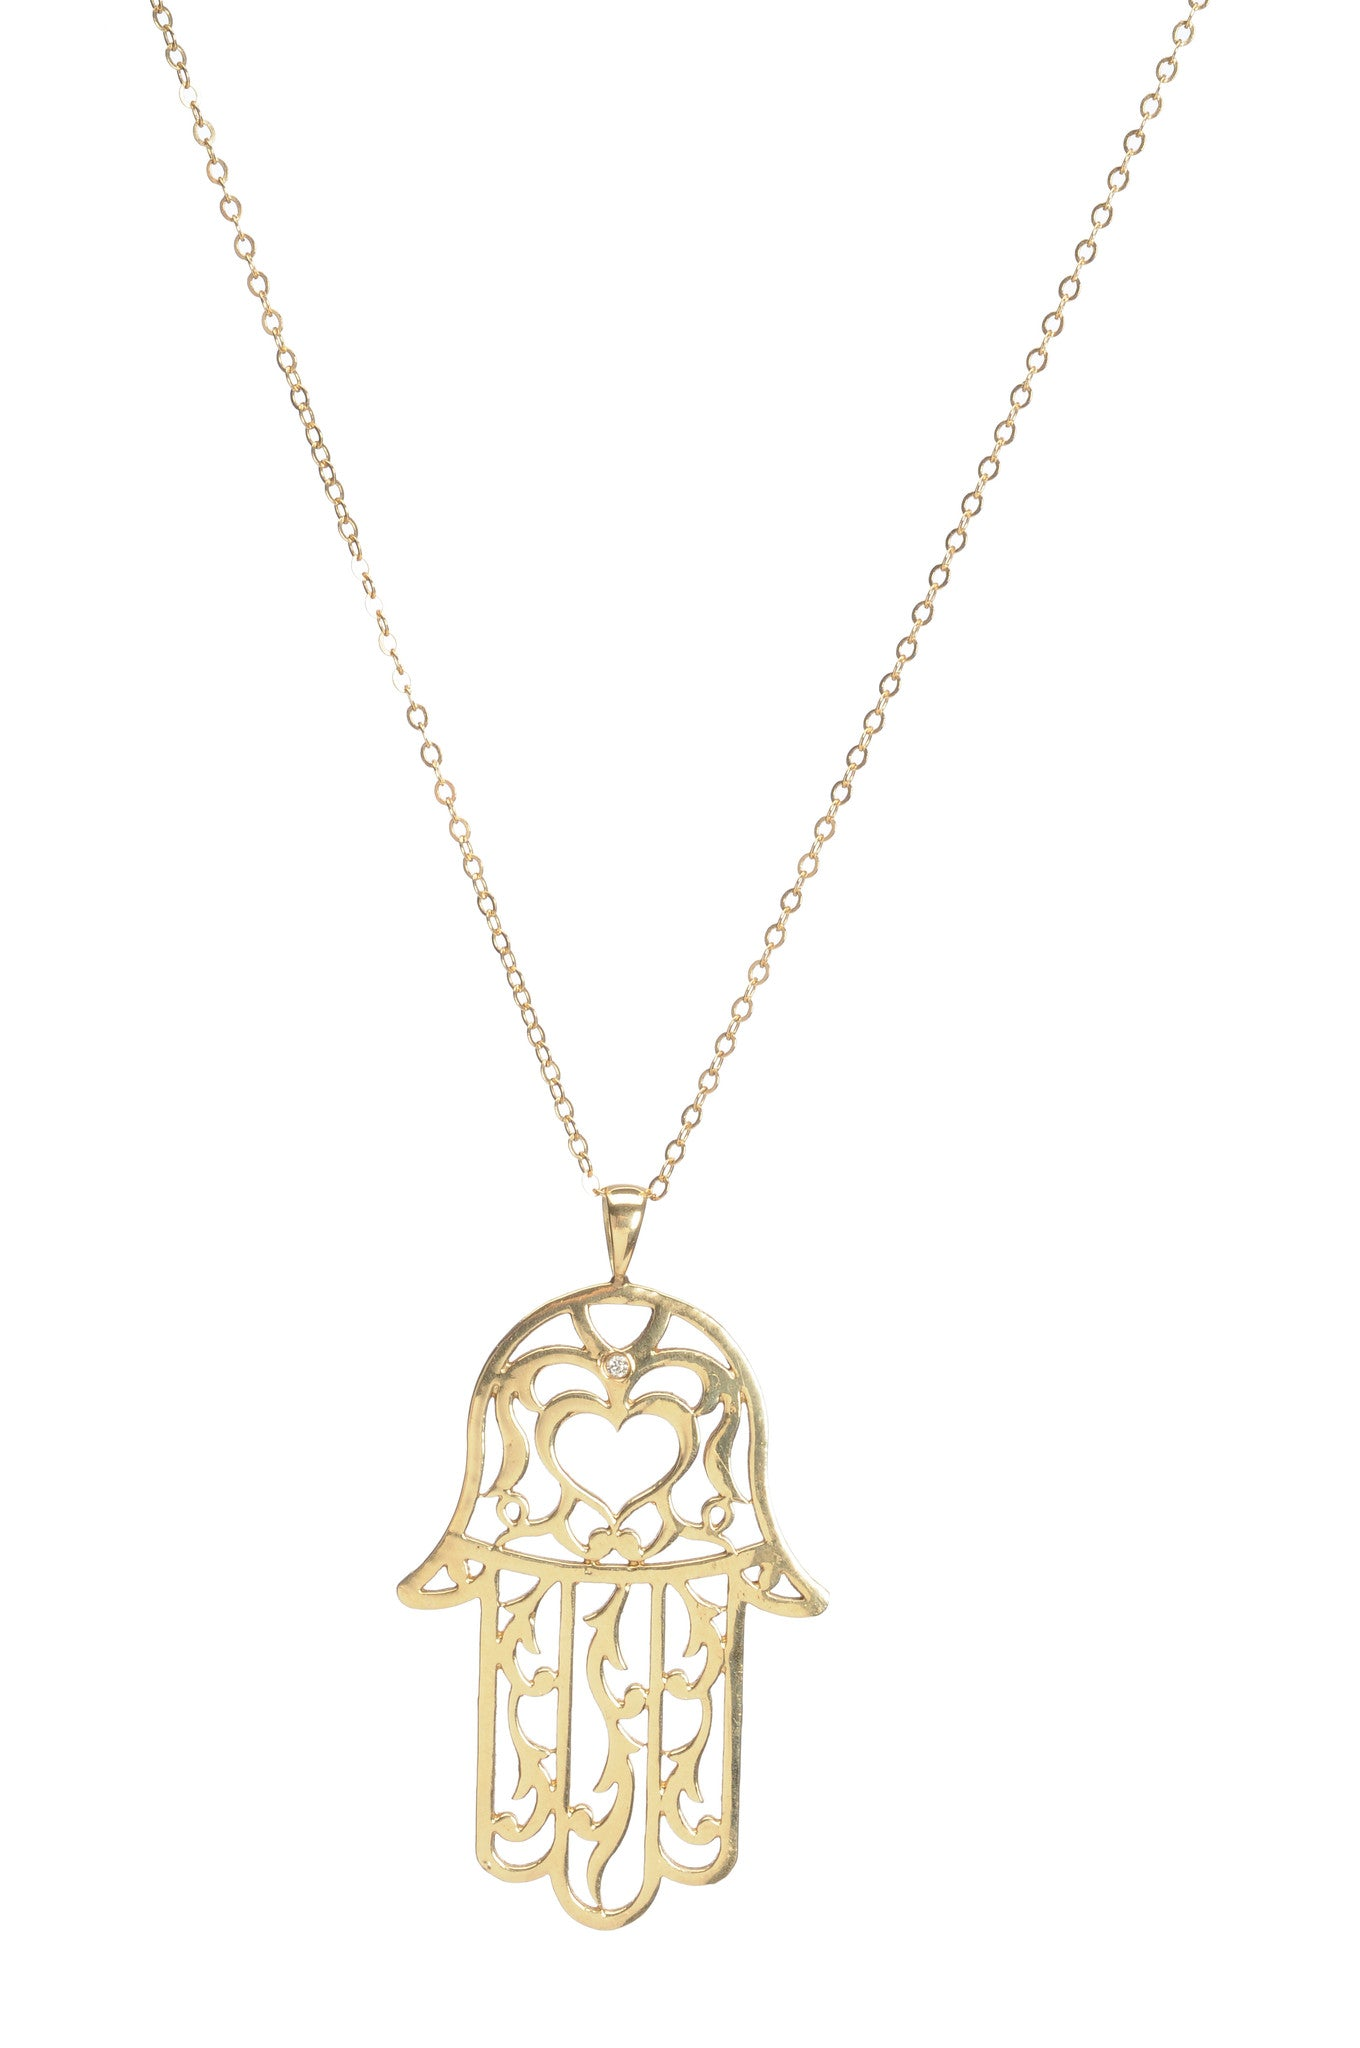 Hayluv collection 16 14k vermeil gold necklace with small hamsa hayluv collection 16 14k vermeil gold necklace with small hamsa gold pendant aloadofball Gallery